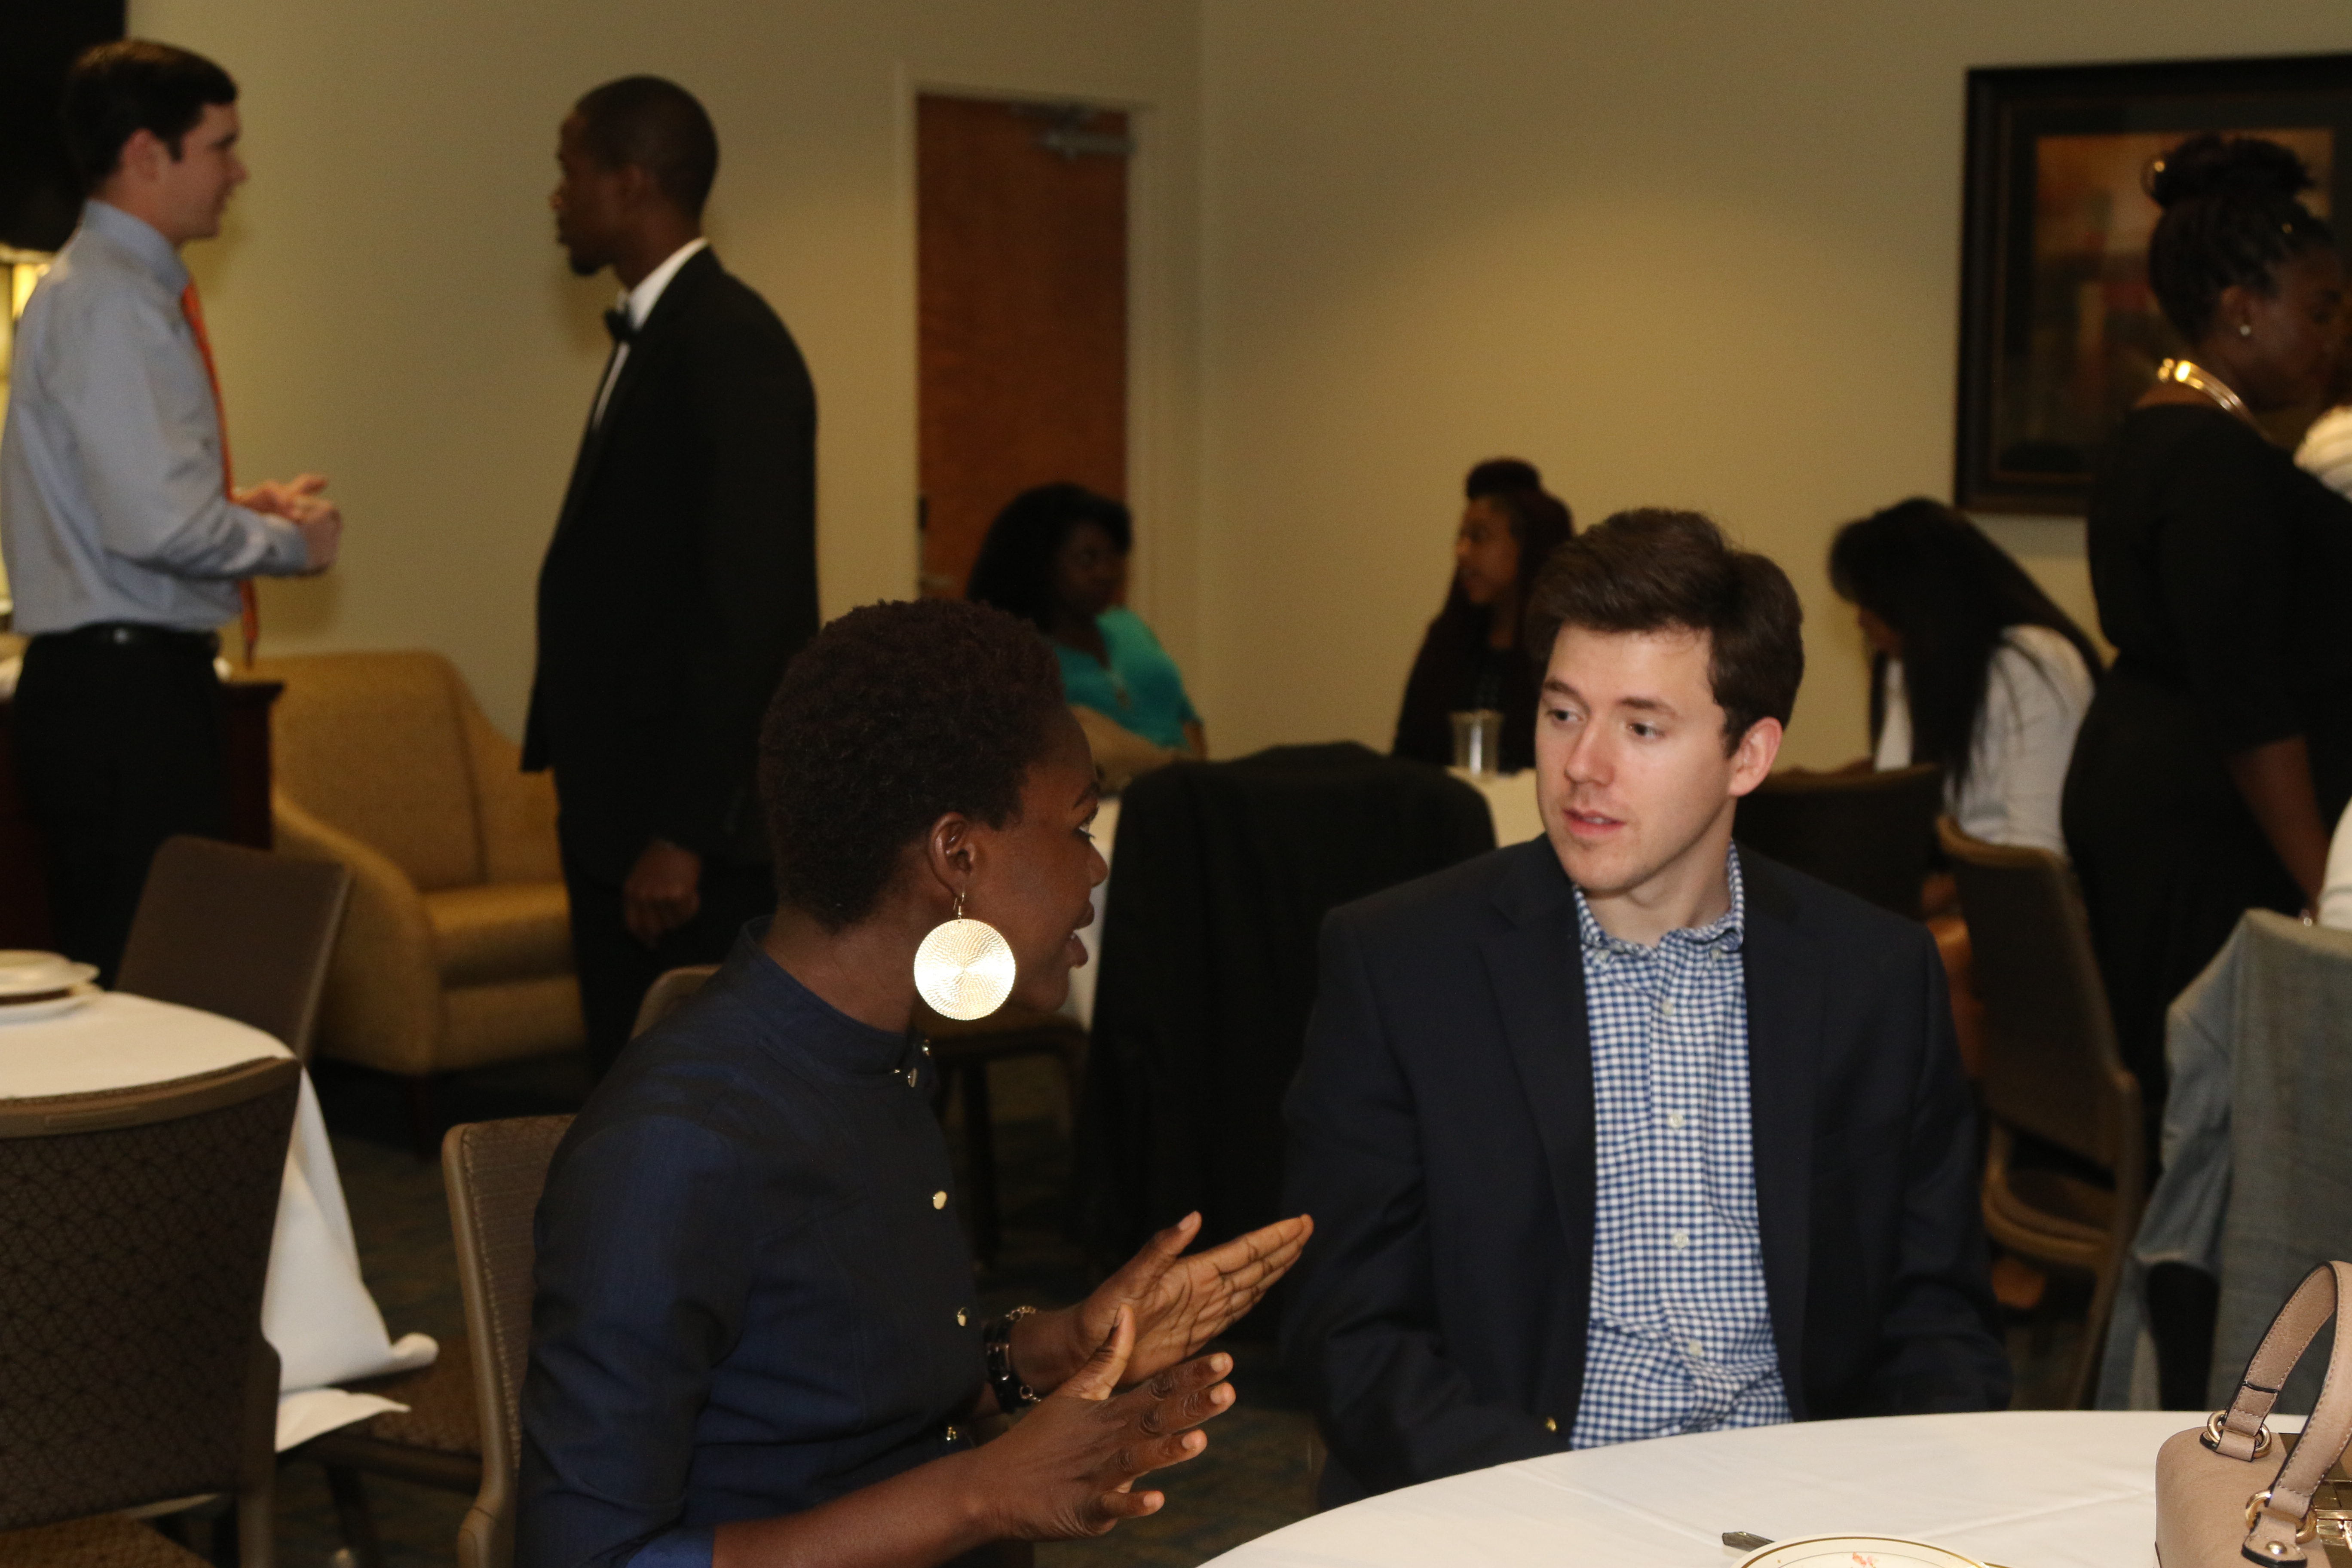 DiCE Fellow Interacting with Current Auburn Graduate Student